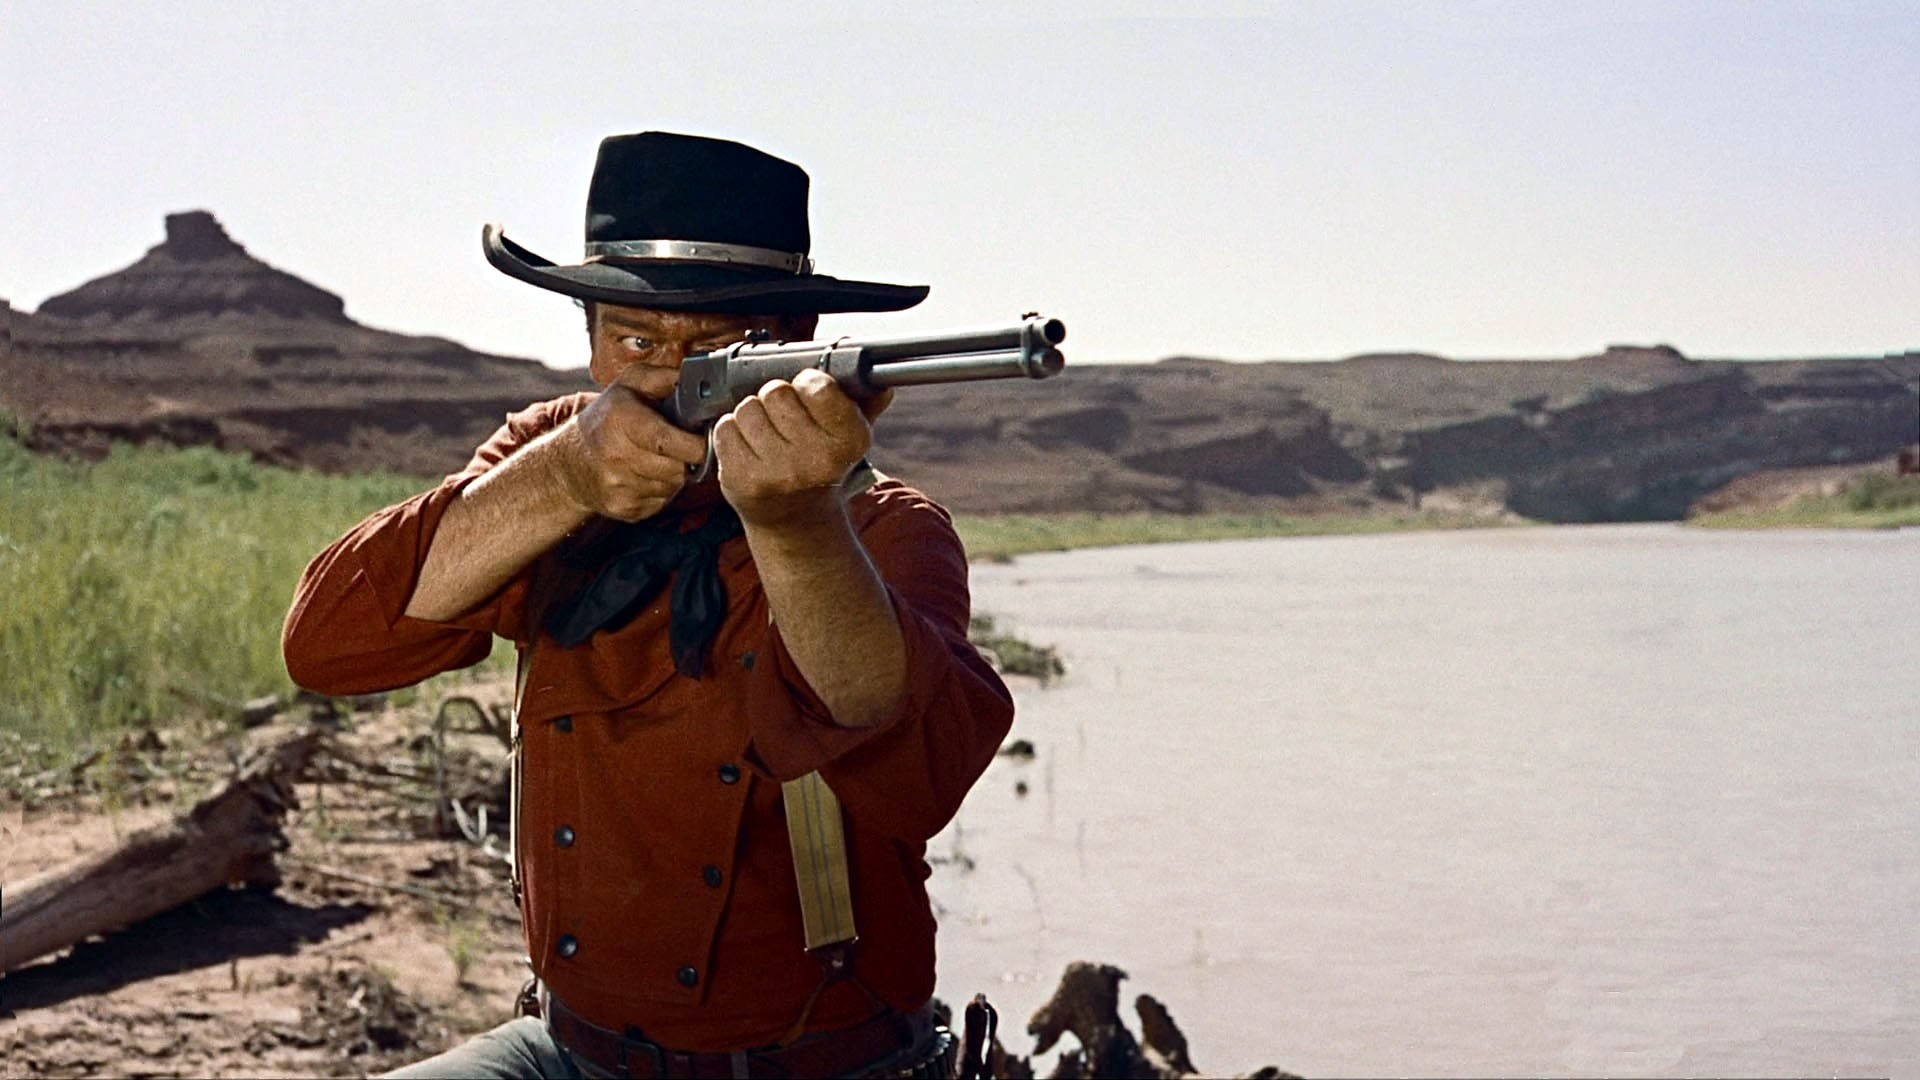 Res: 1920x1080, movies weapons guns rifle cowboy men actor wallpaper background